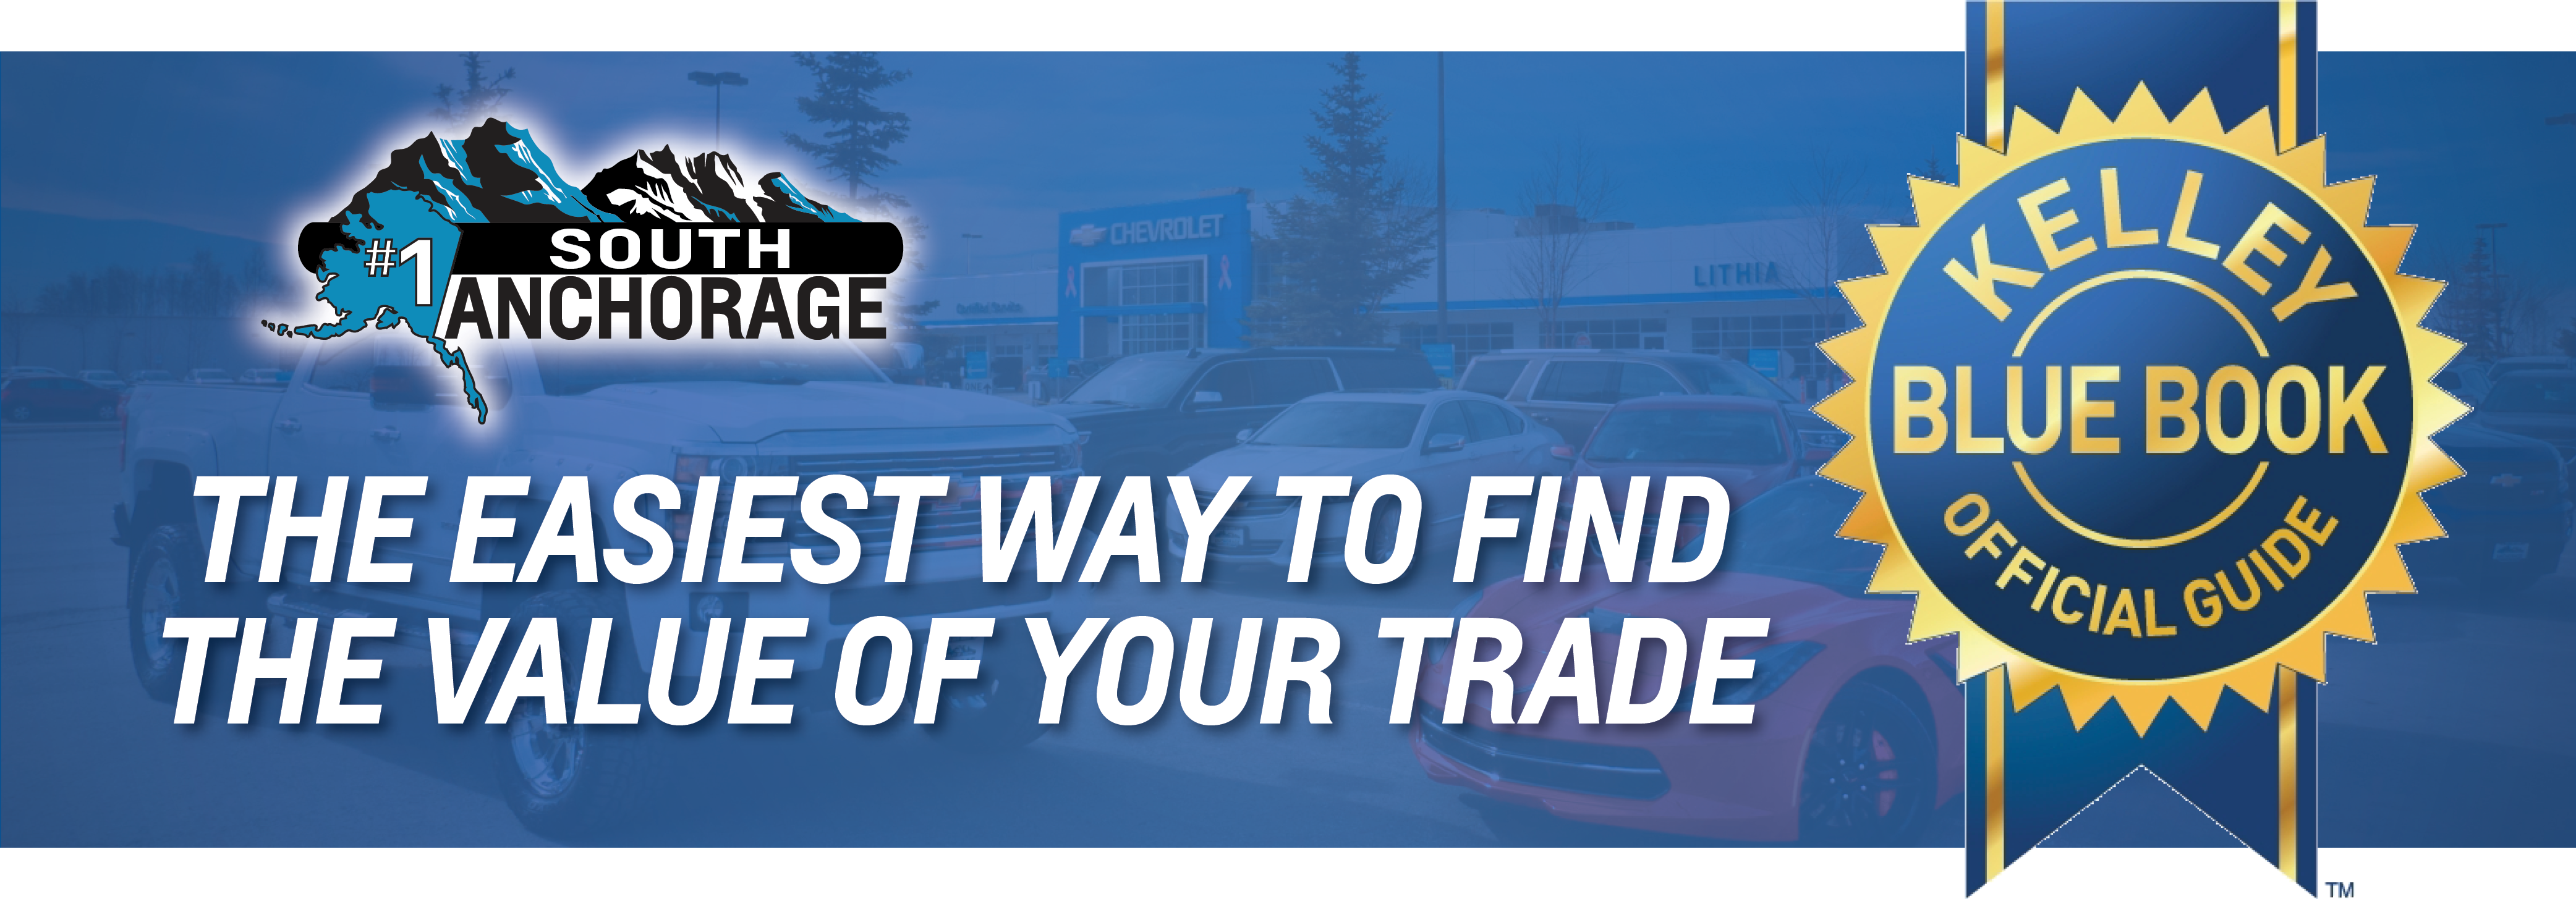 Kelley Blue Book Used Cars Value Trade Fresh Trade Chevrolet Of south Anchorage In Alaska